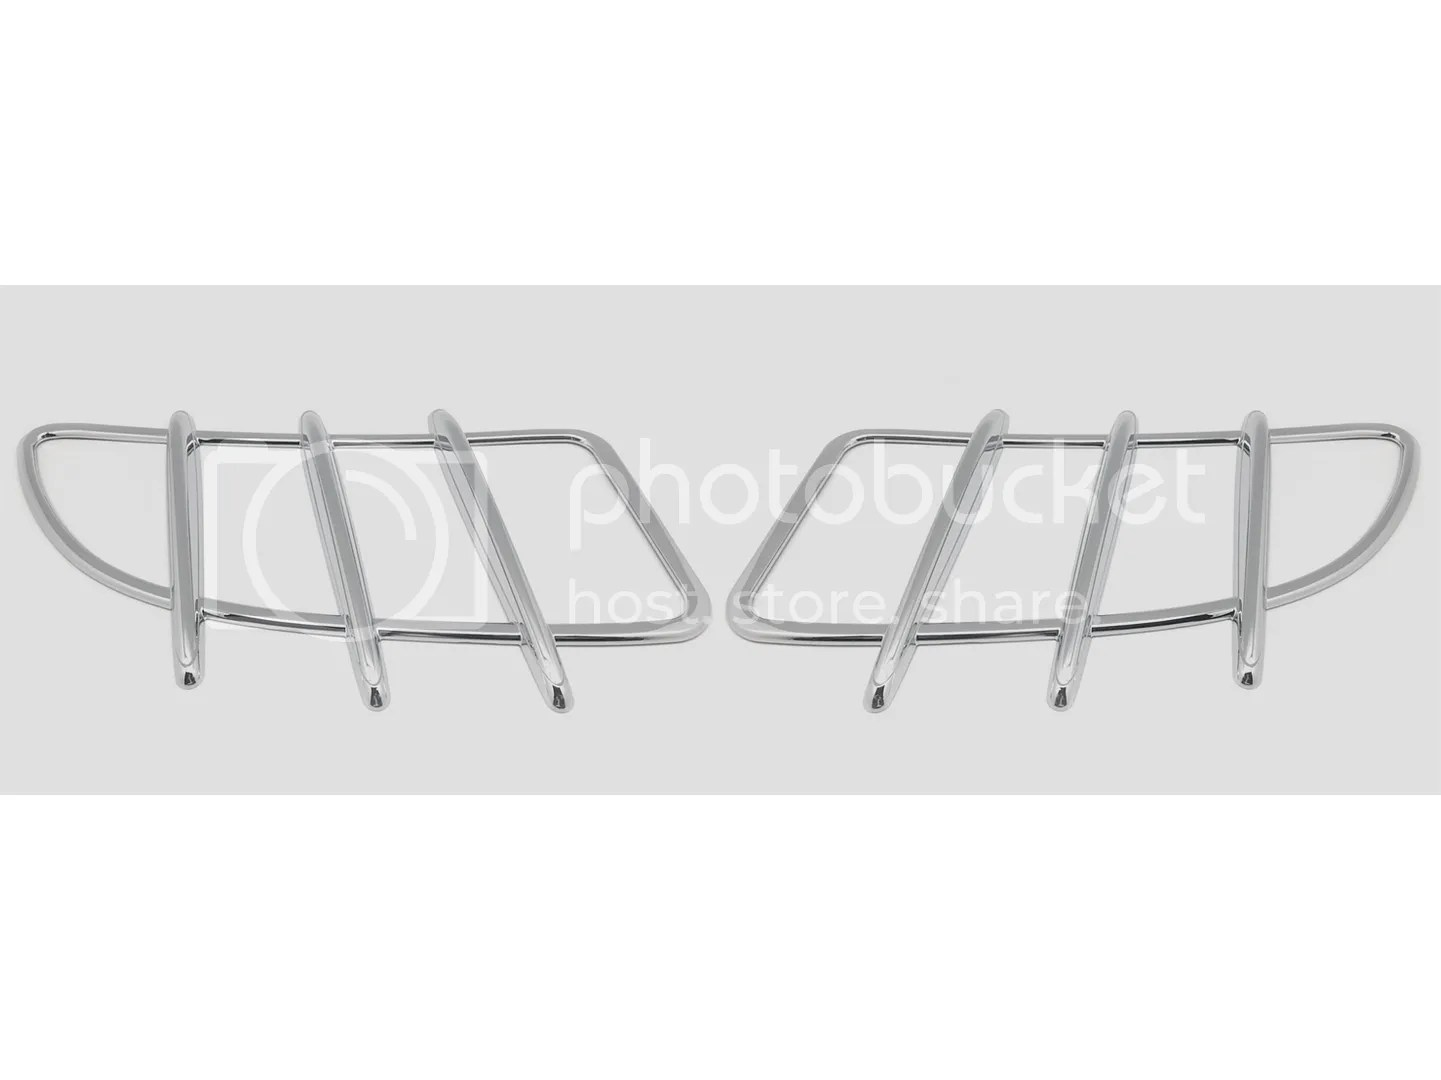 2 Chrome Hood Molding Grill Grille Vent Cover For 04 11